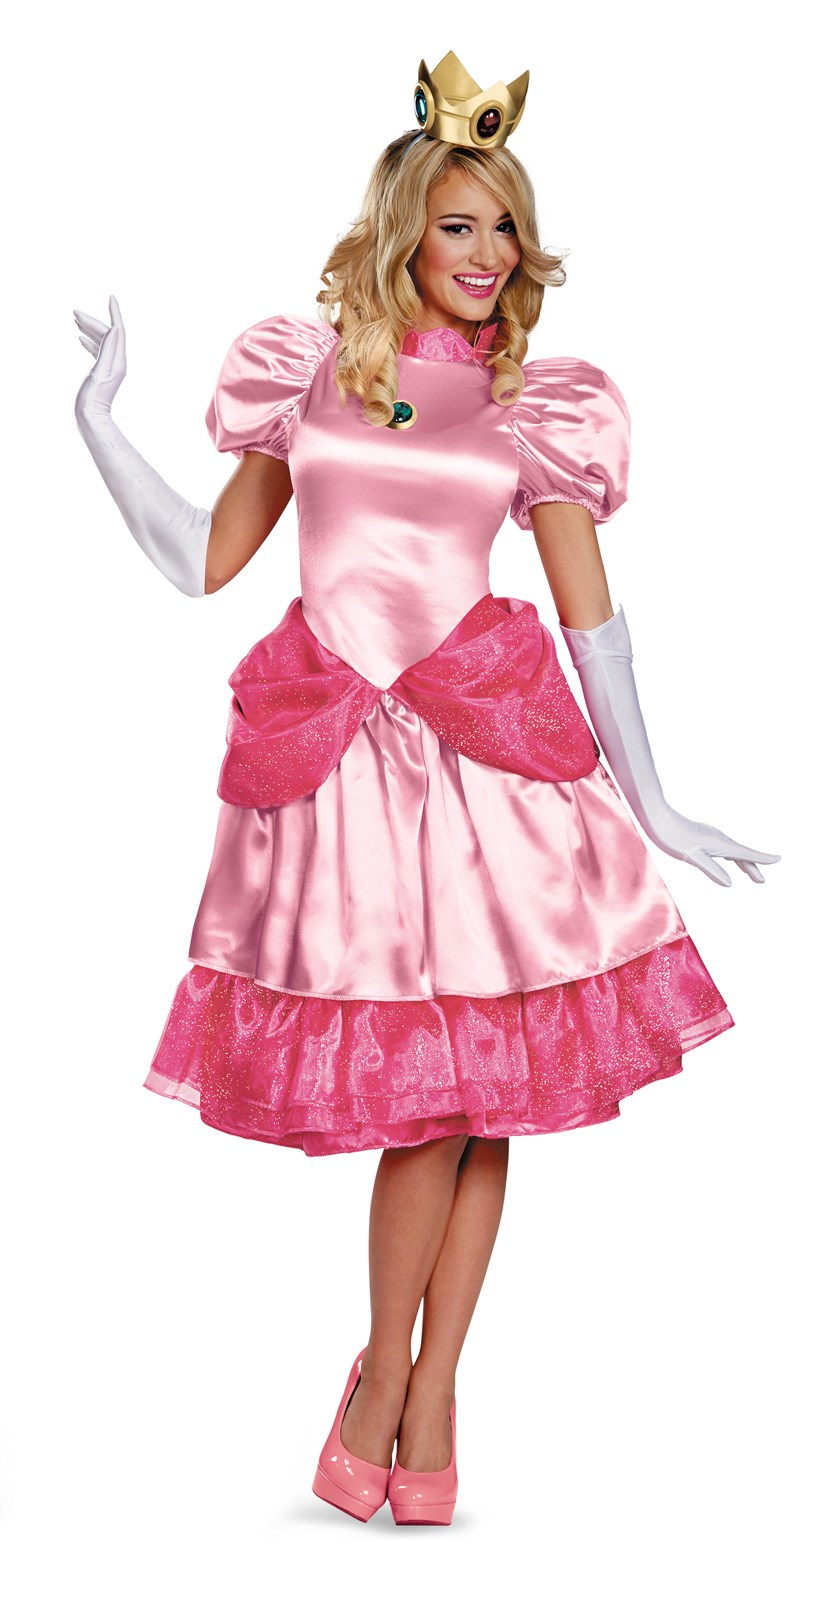 Super Mario Bros - Adult Deluxe Princess Peach Costume Medium (8-10)